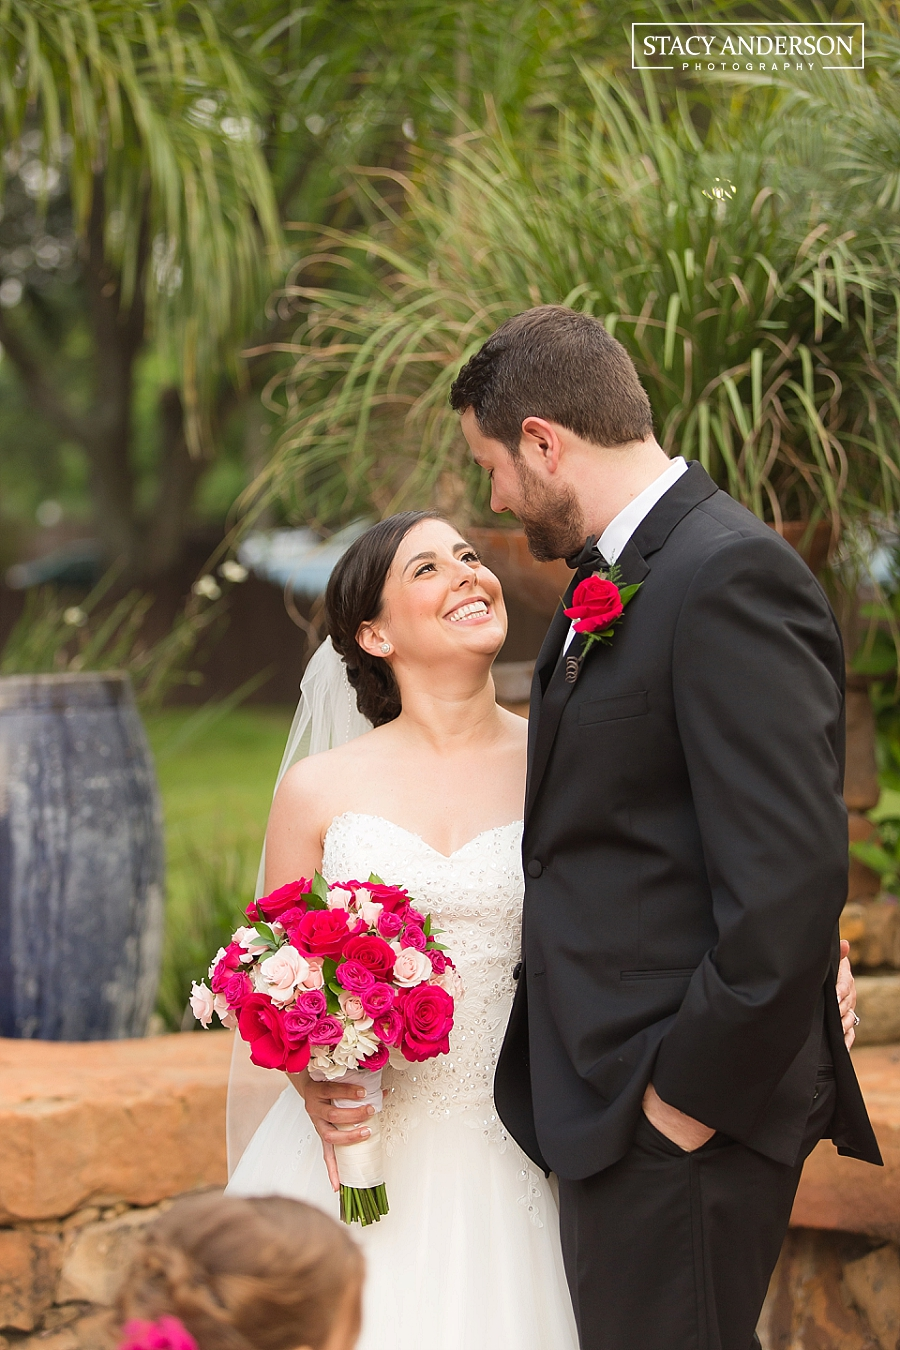 Stacy Anderson Photography Agave Road Katy TX Photographer_0146